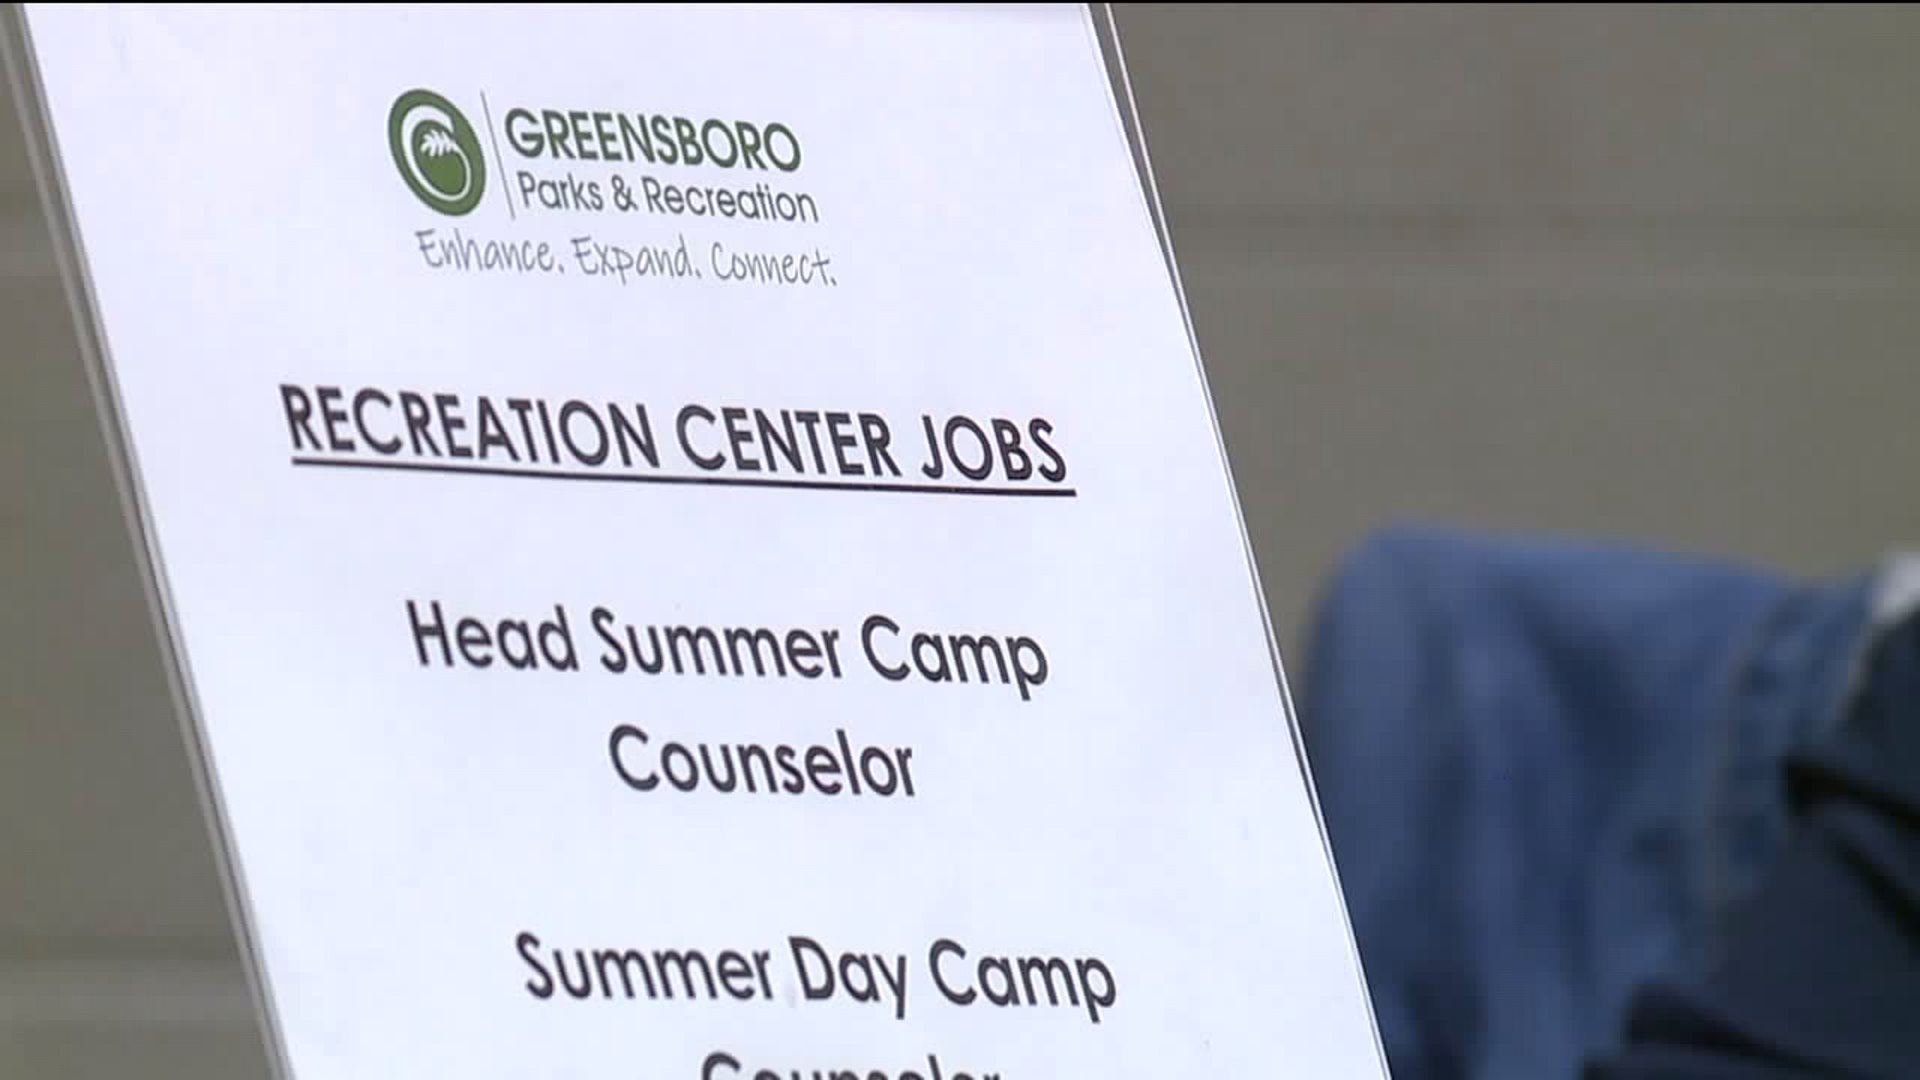 Greensboro looking to fil 150 part-time summer jobs